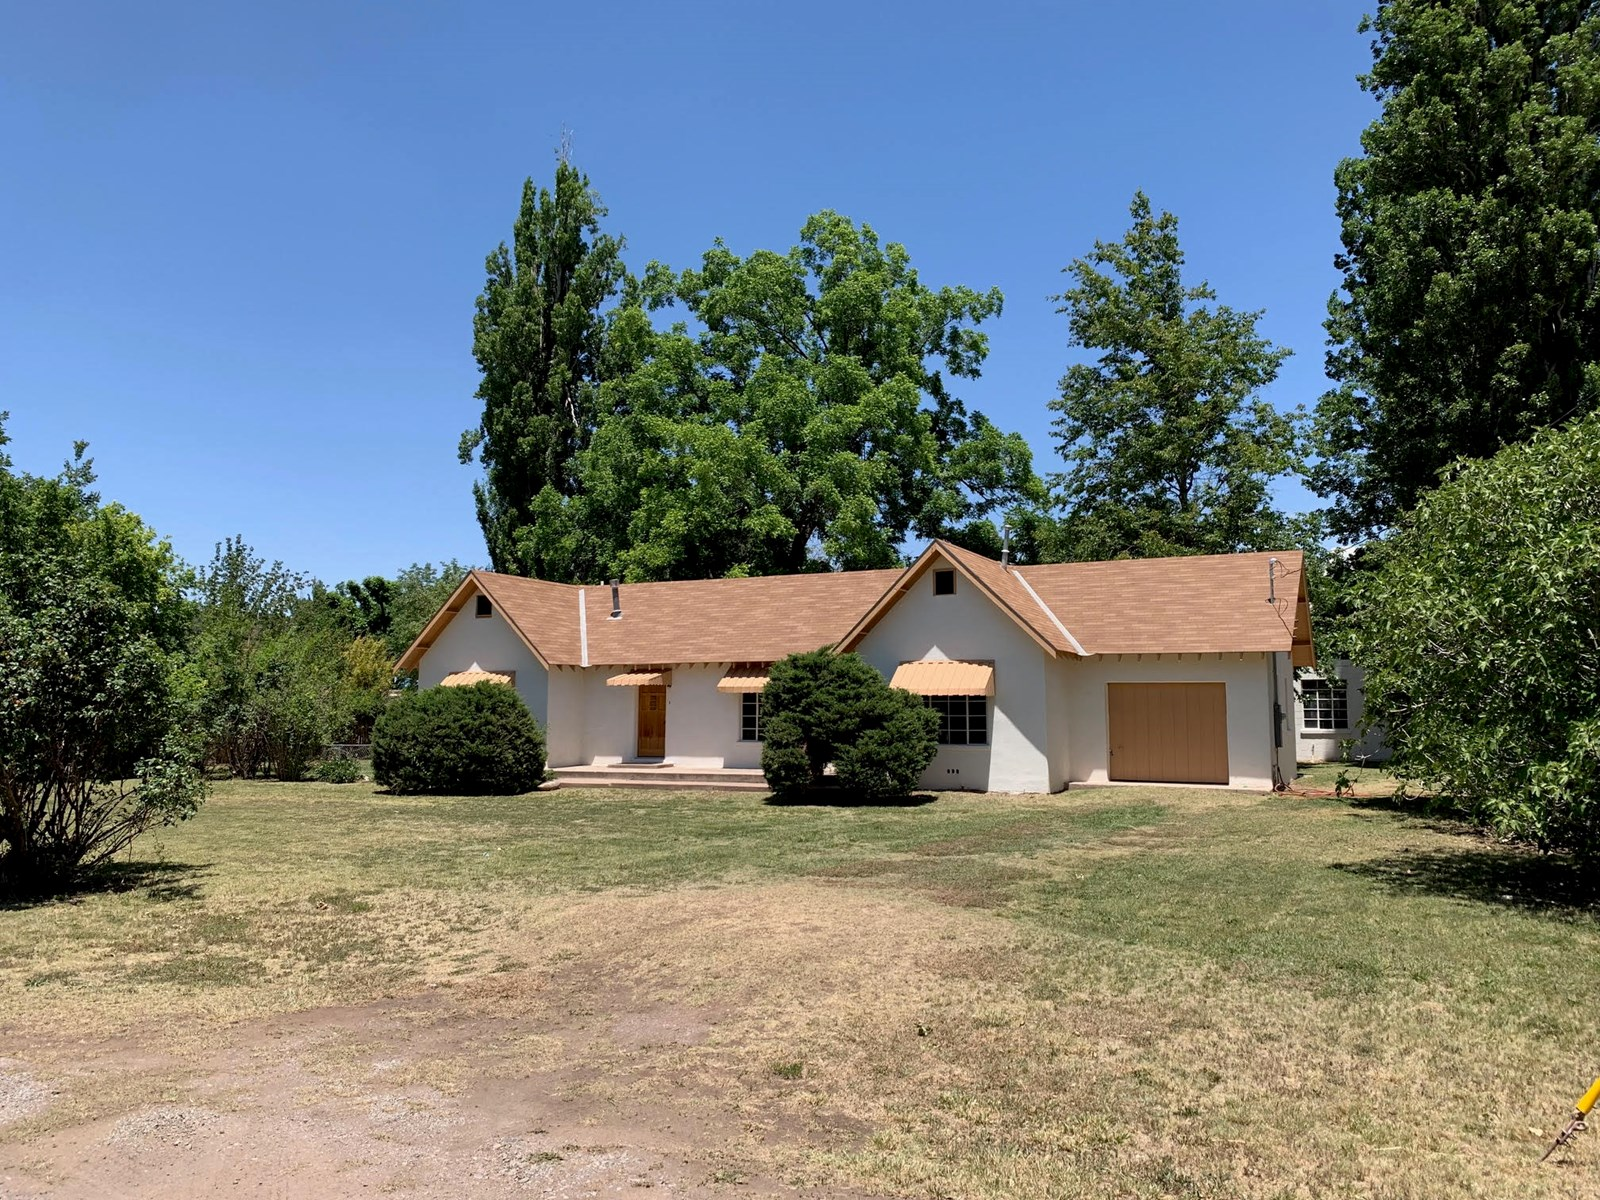 Home on Corner Lot in Tularosa NM with Ditch Irrigation